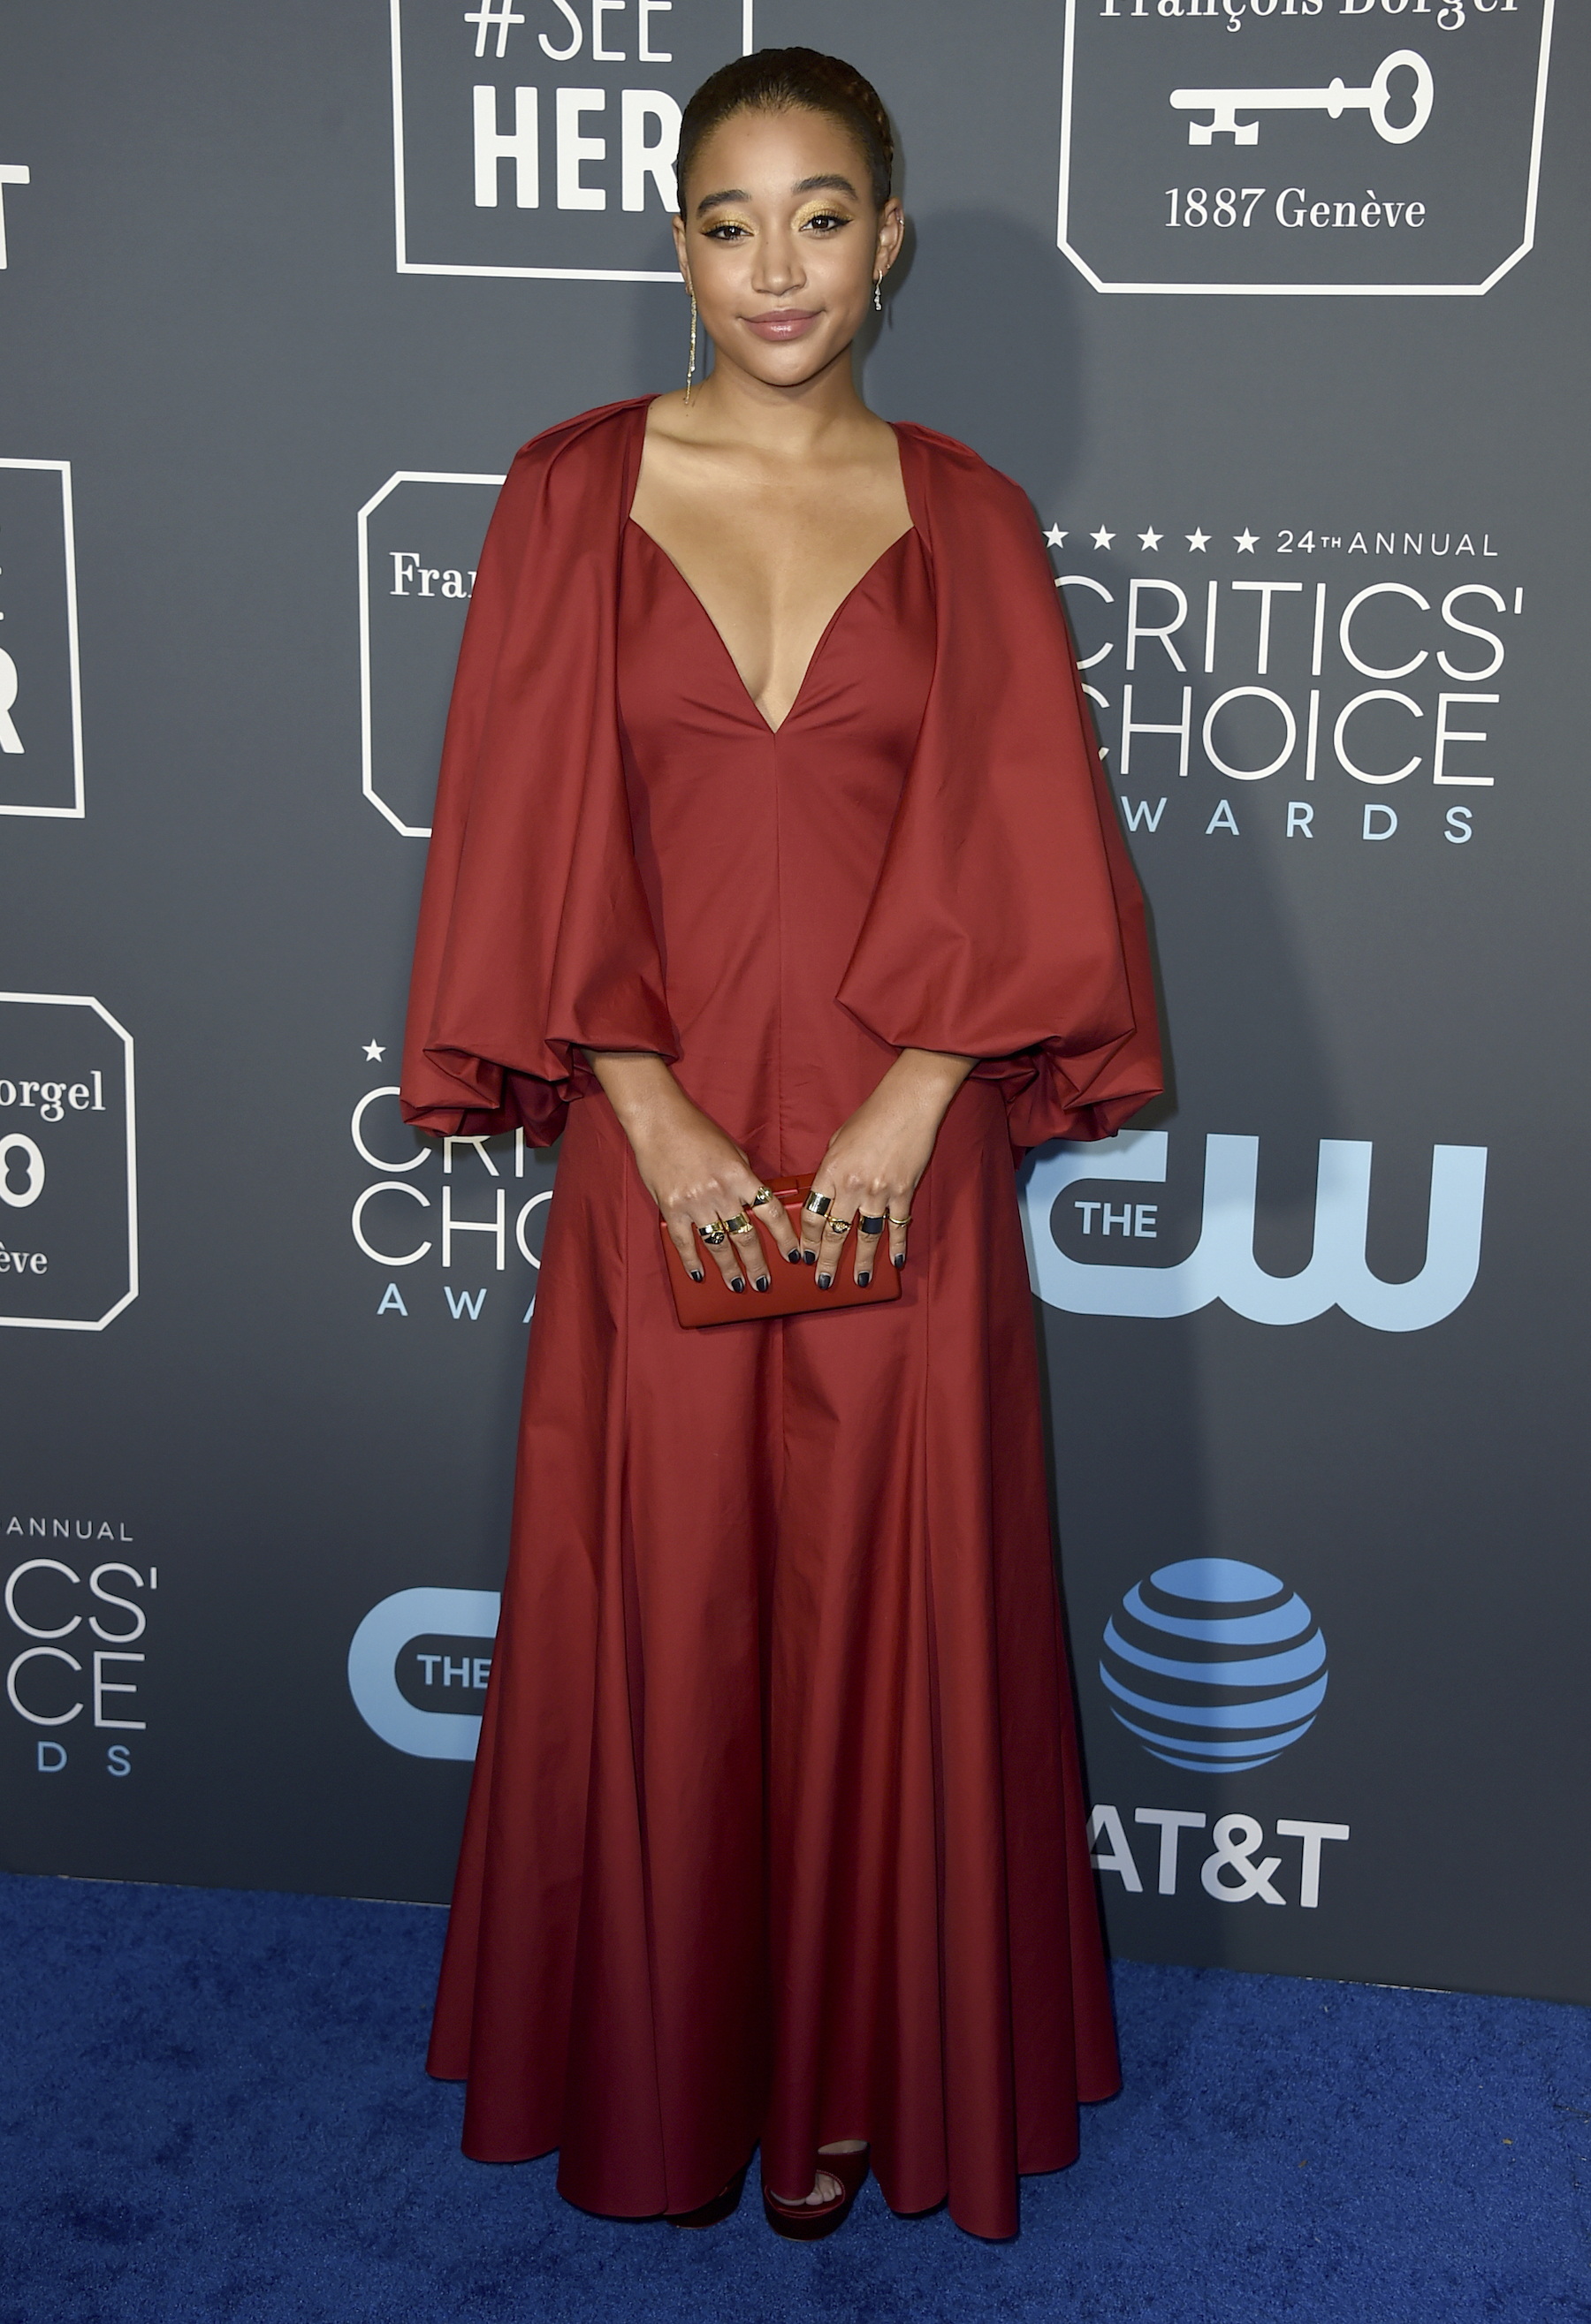 <div class='meta'><div class='origin-logo' data-origin='AP'></div><span class='caption-text' data-credit='Jordan Strauss/Invision/AP'>Amandla Stenberg arrives at the 24th annual Critics' Choice Awards on Sunday, Jan. 13, 2019, at the Barker Hangar in Santa Monica, Calif.</span></div>